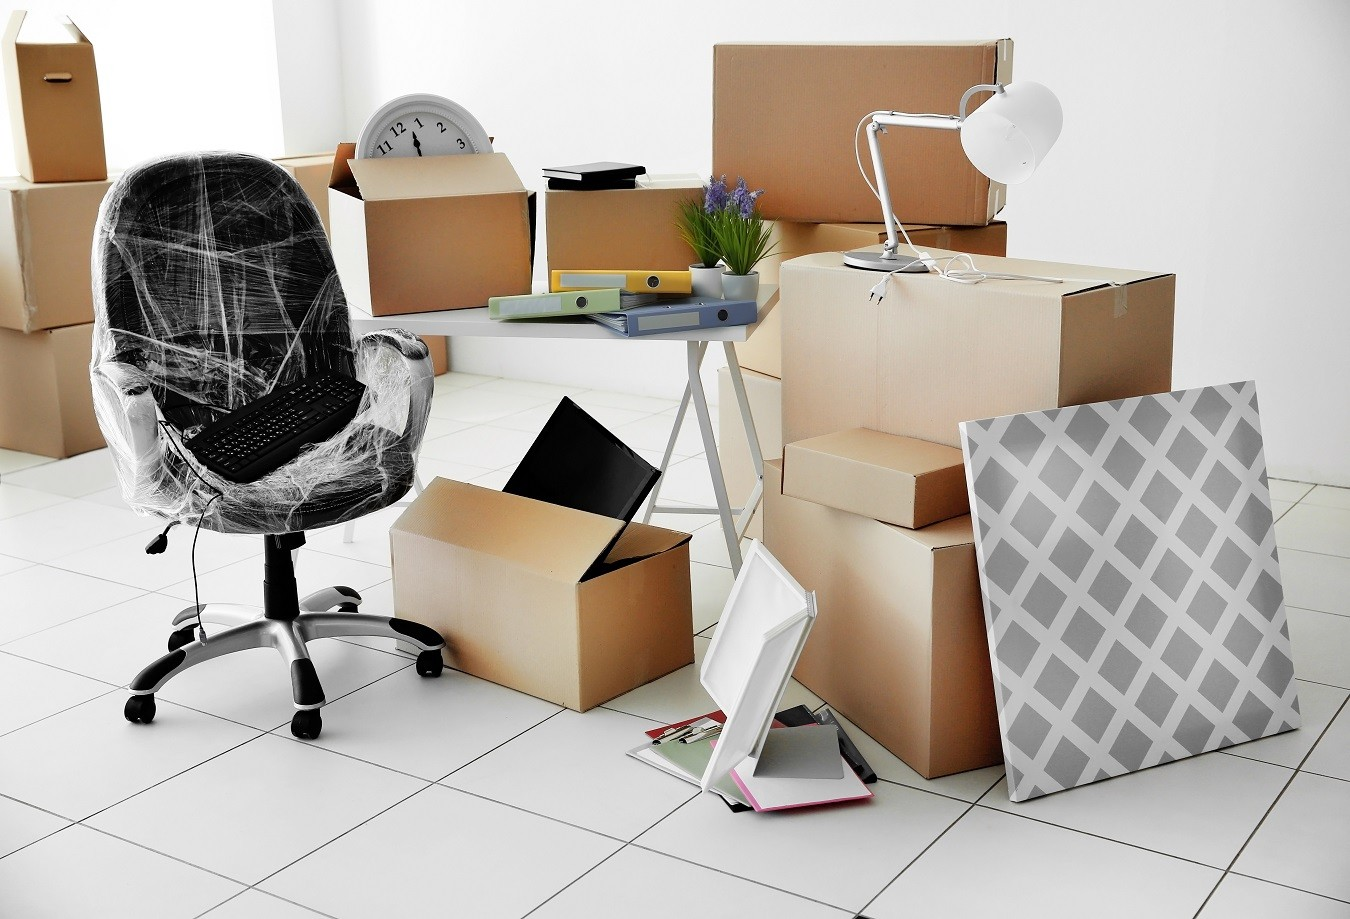 No time to move? We are your movers and packers Sydney! We Unpack, Declutter & reorganise your Home